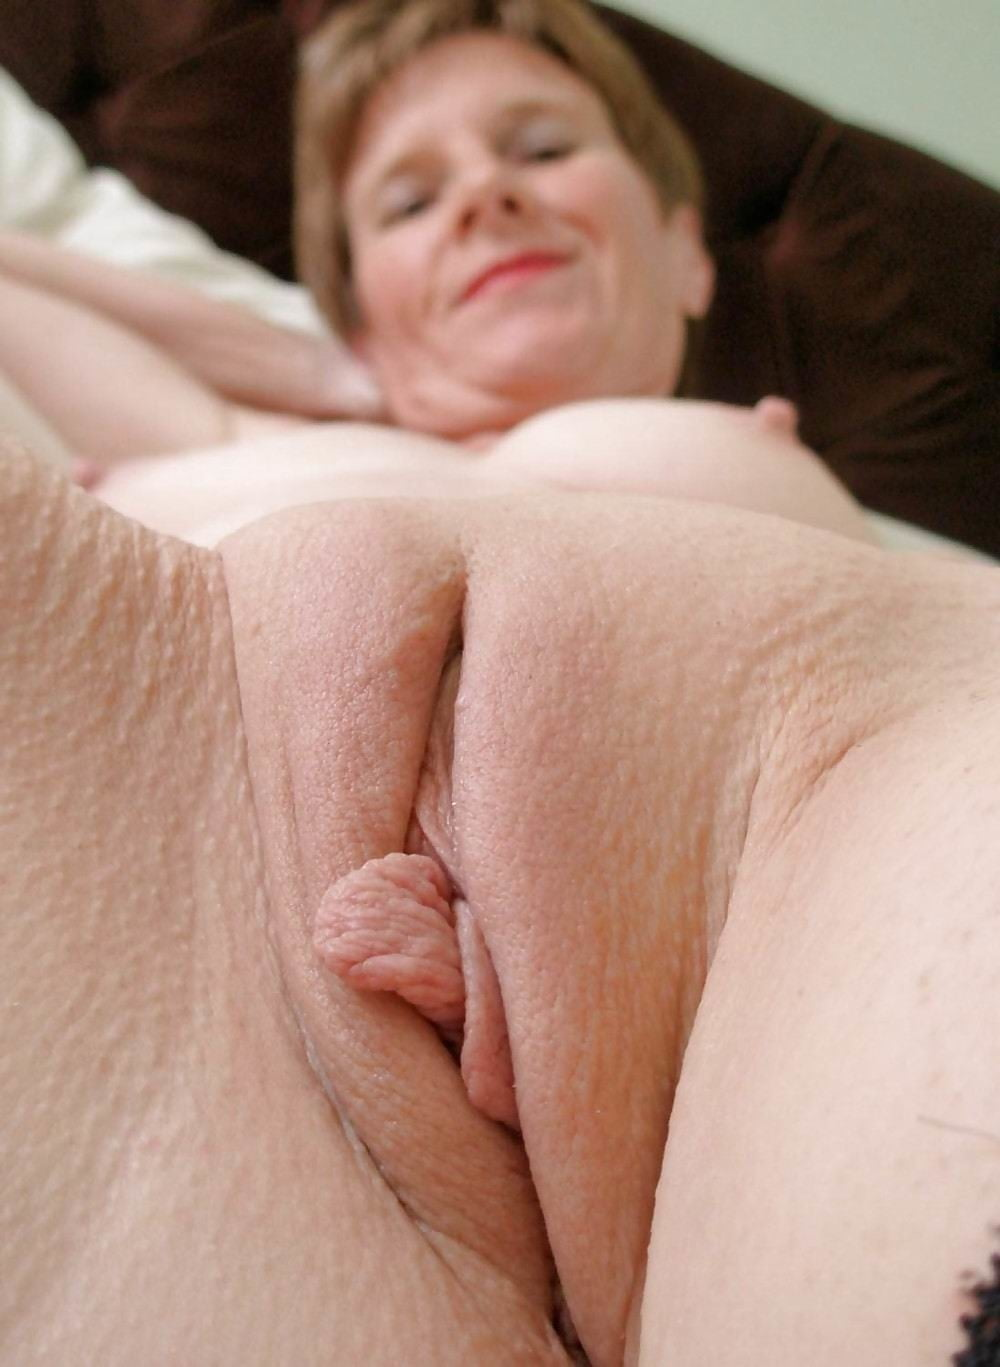 Naked old lady vaginas, very tight pussys with ebony dicks